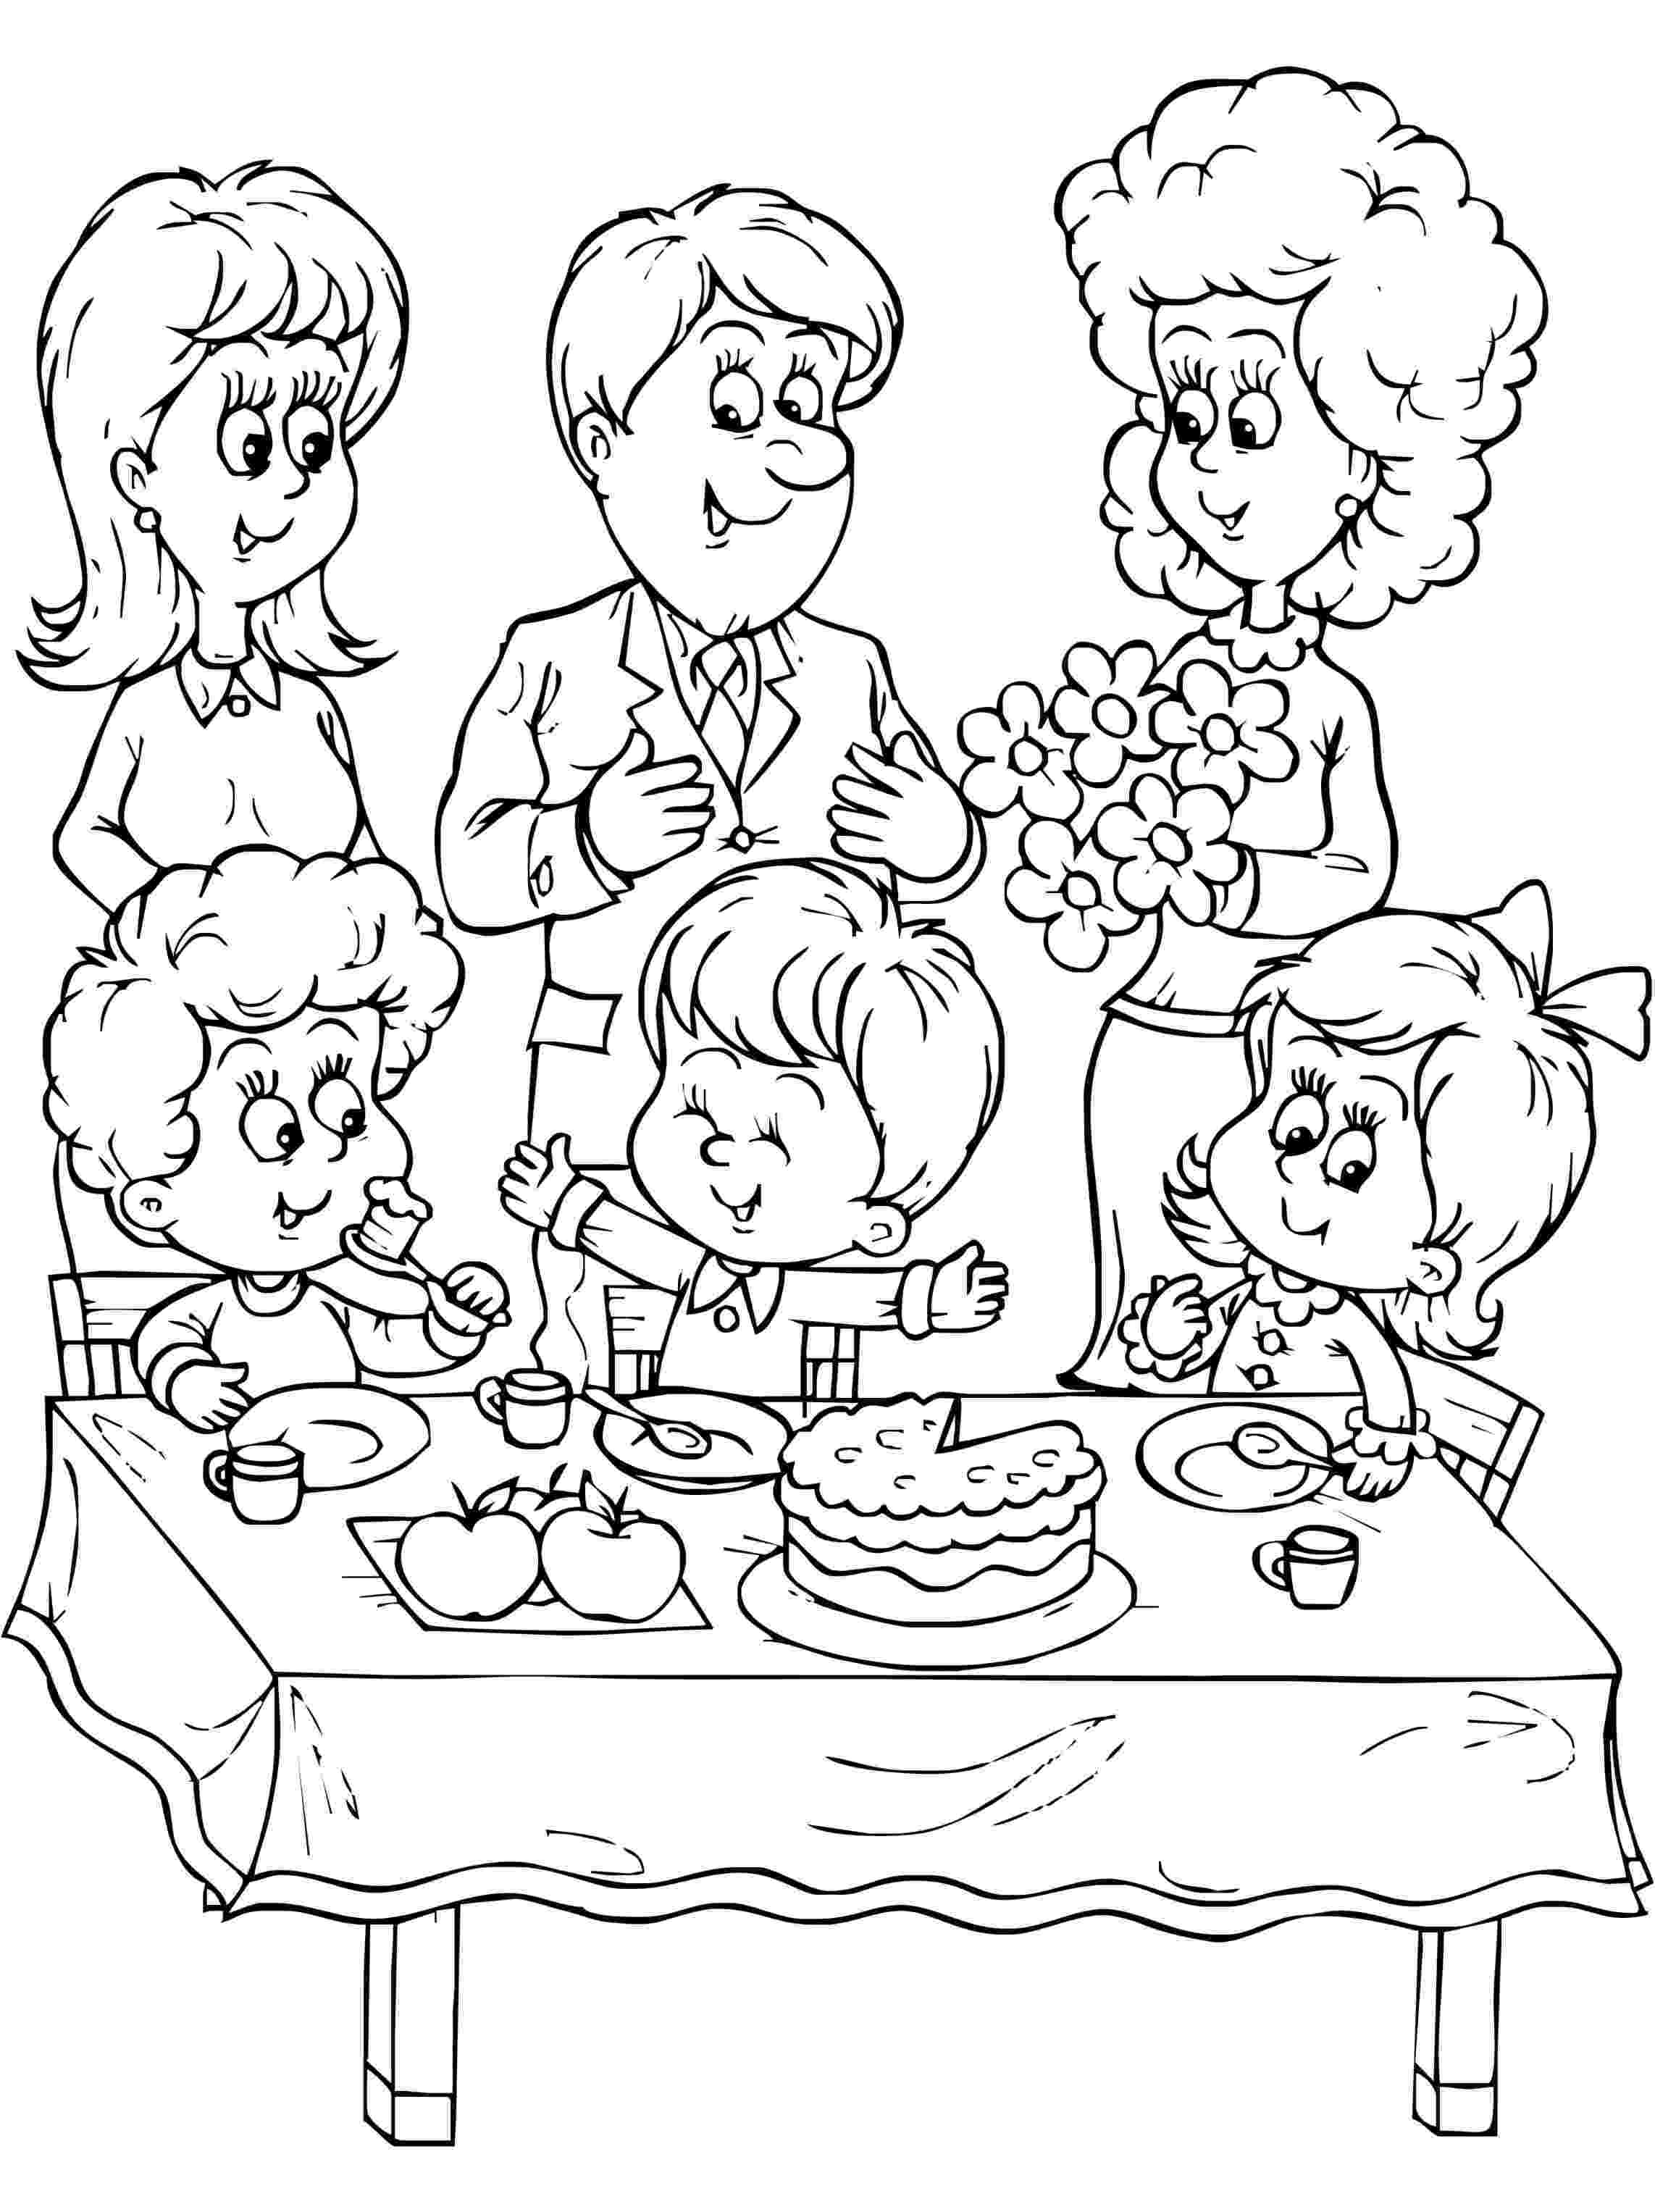 family coloring pages family colouring page activities kidspot family coloring pages